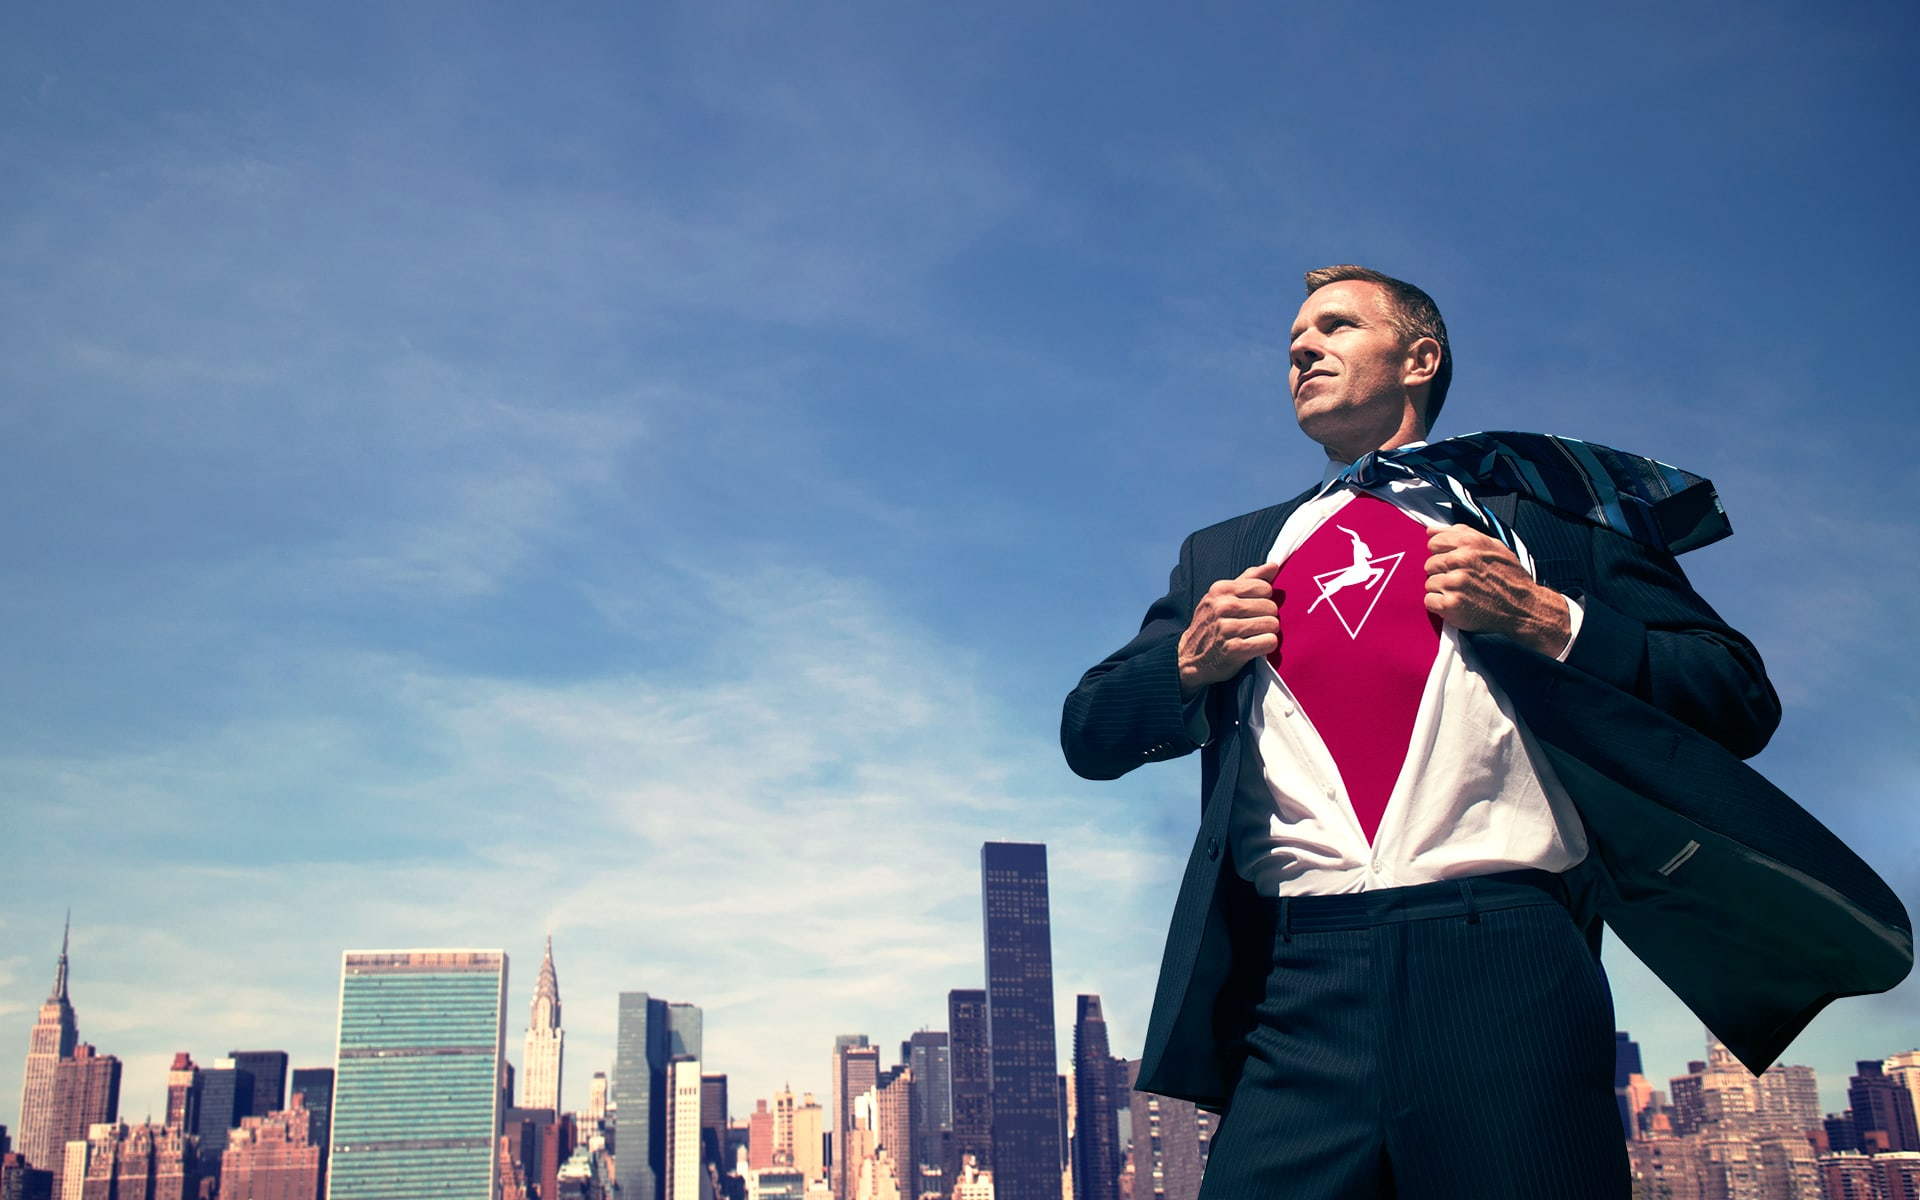 Business Transformation Platform Superhero with Signavio T-Shirt standing in front of a skyline